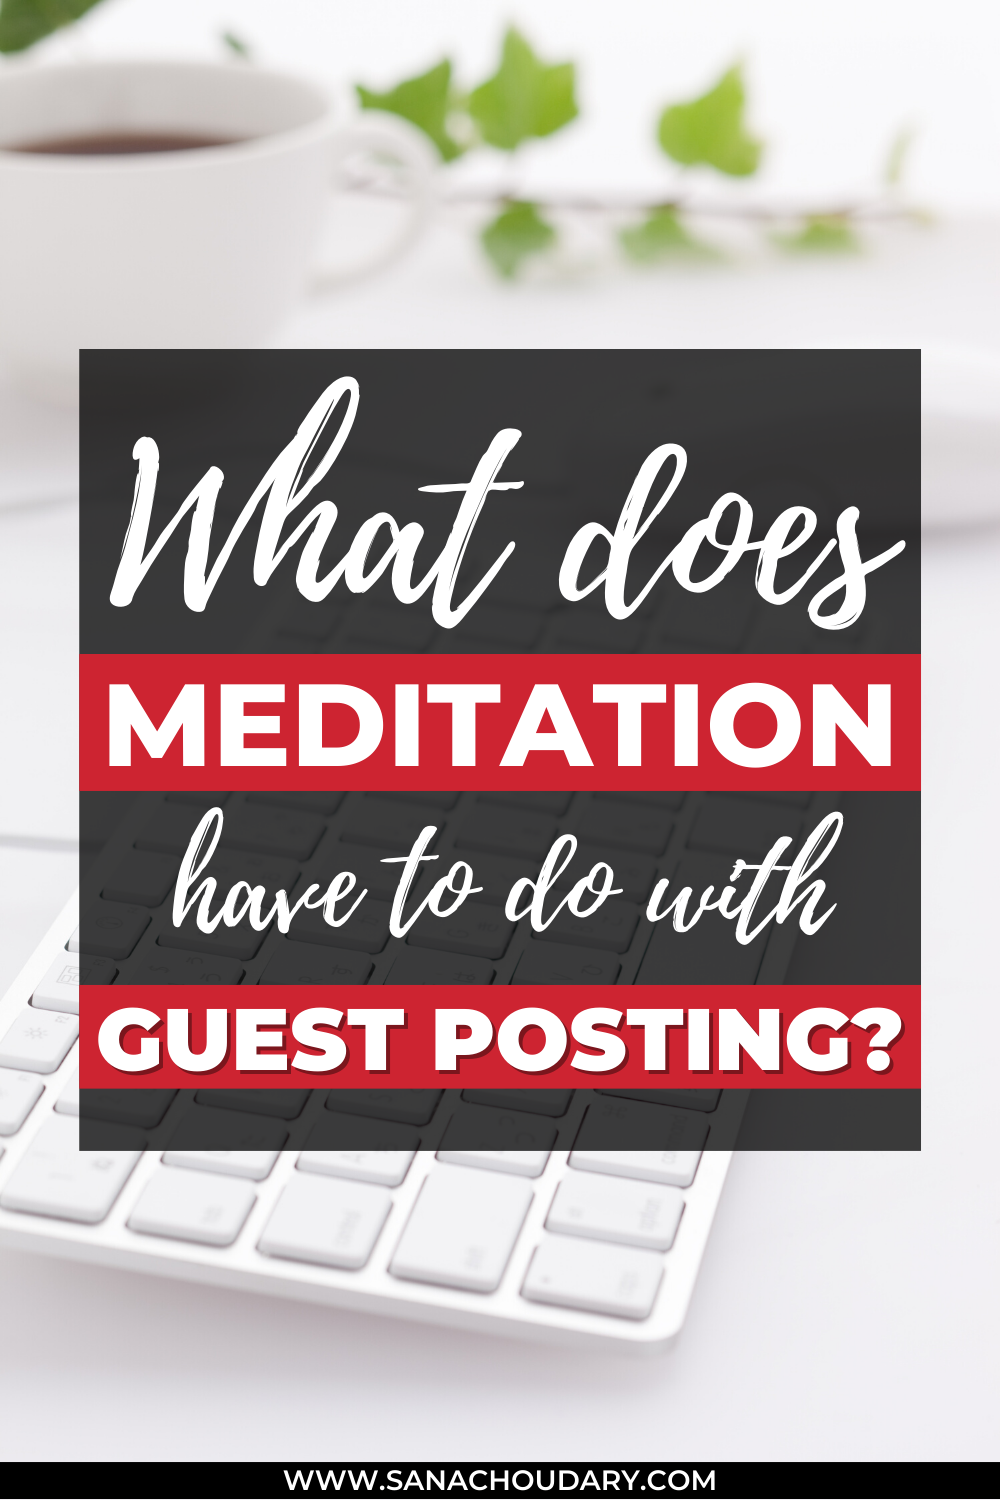 What does meditation have to do with guest posting?